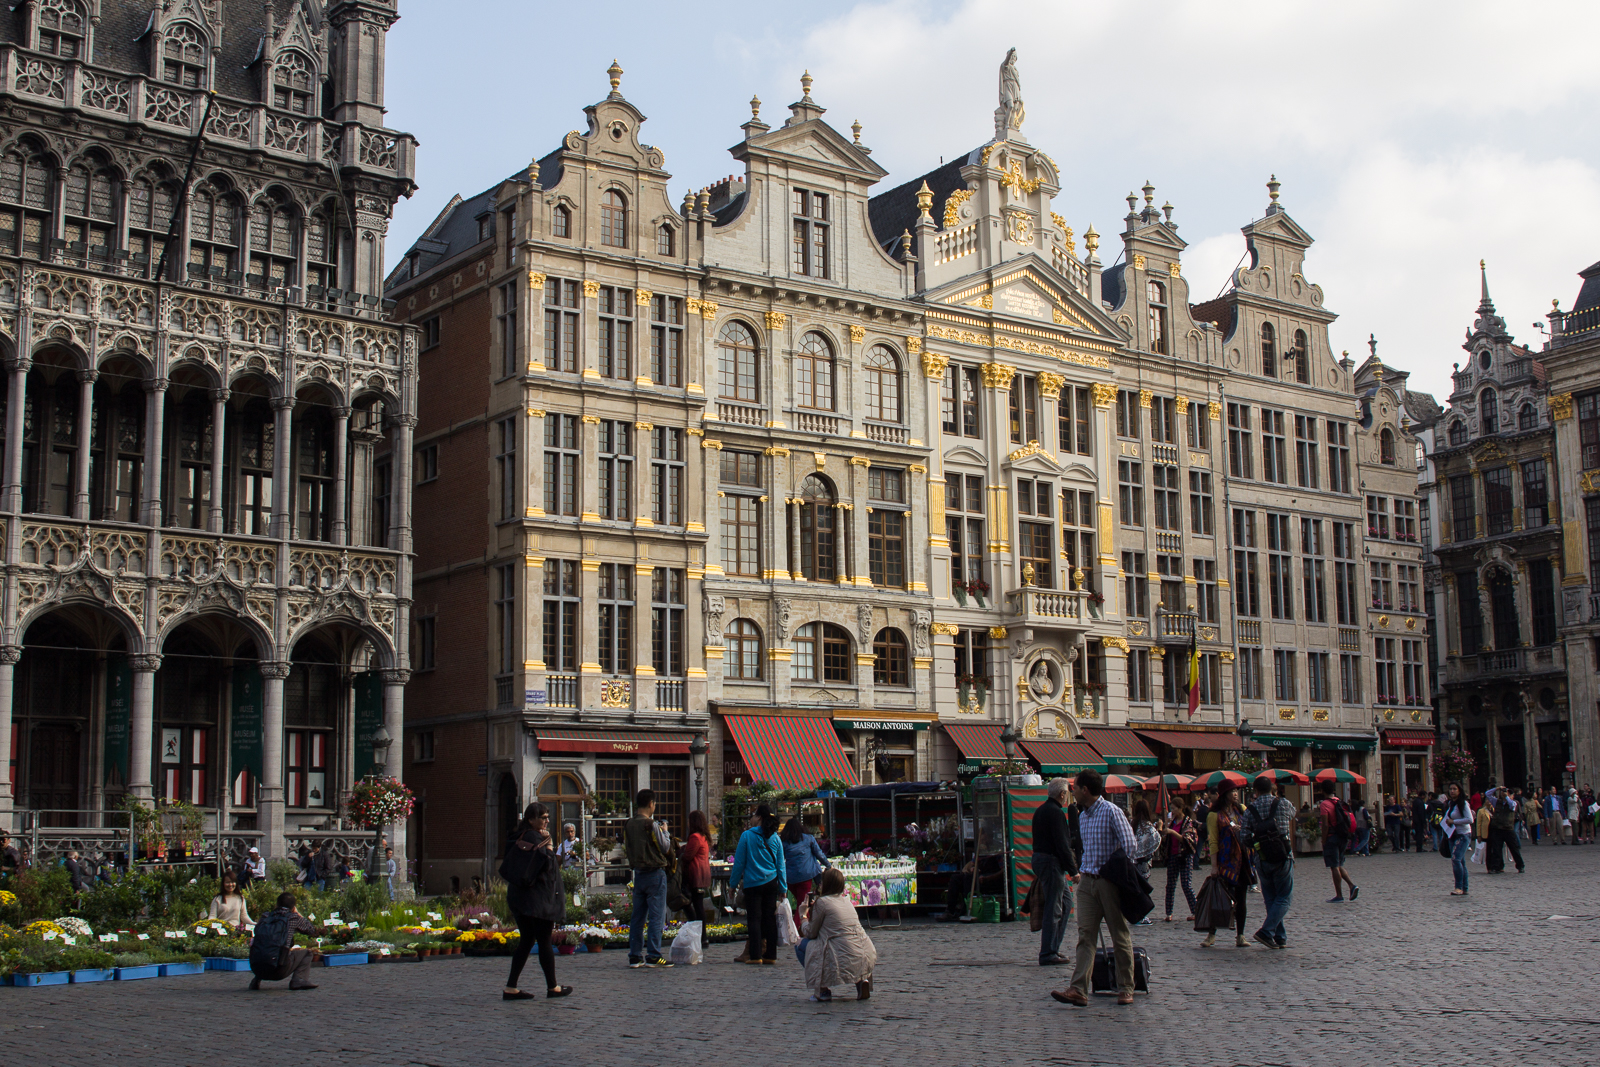 Guild houses on Grand-Place, Brussels